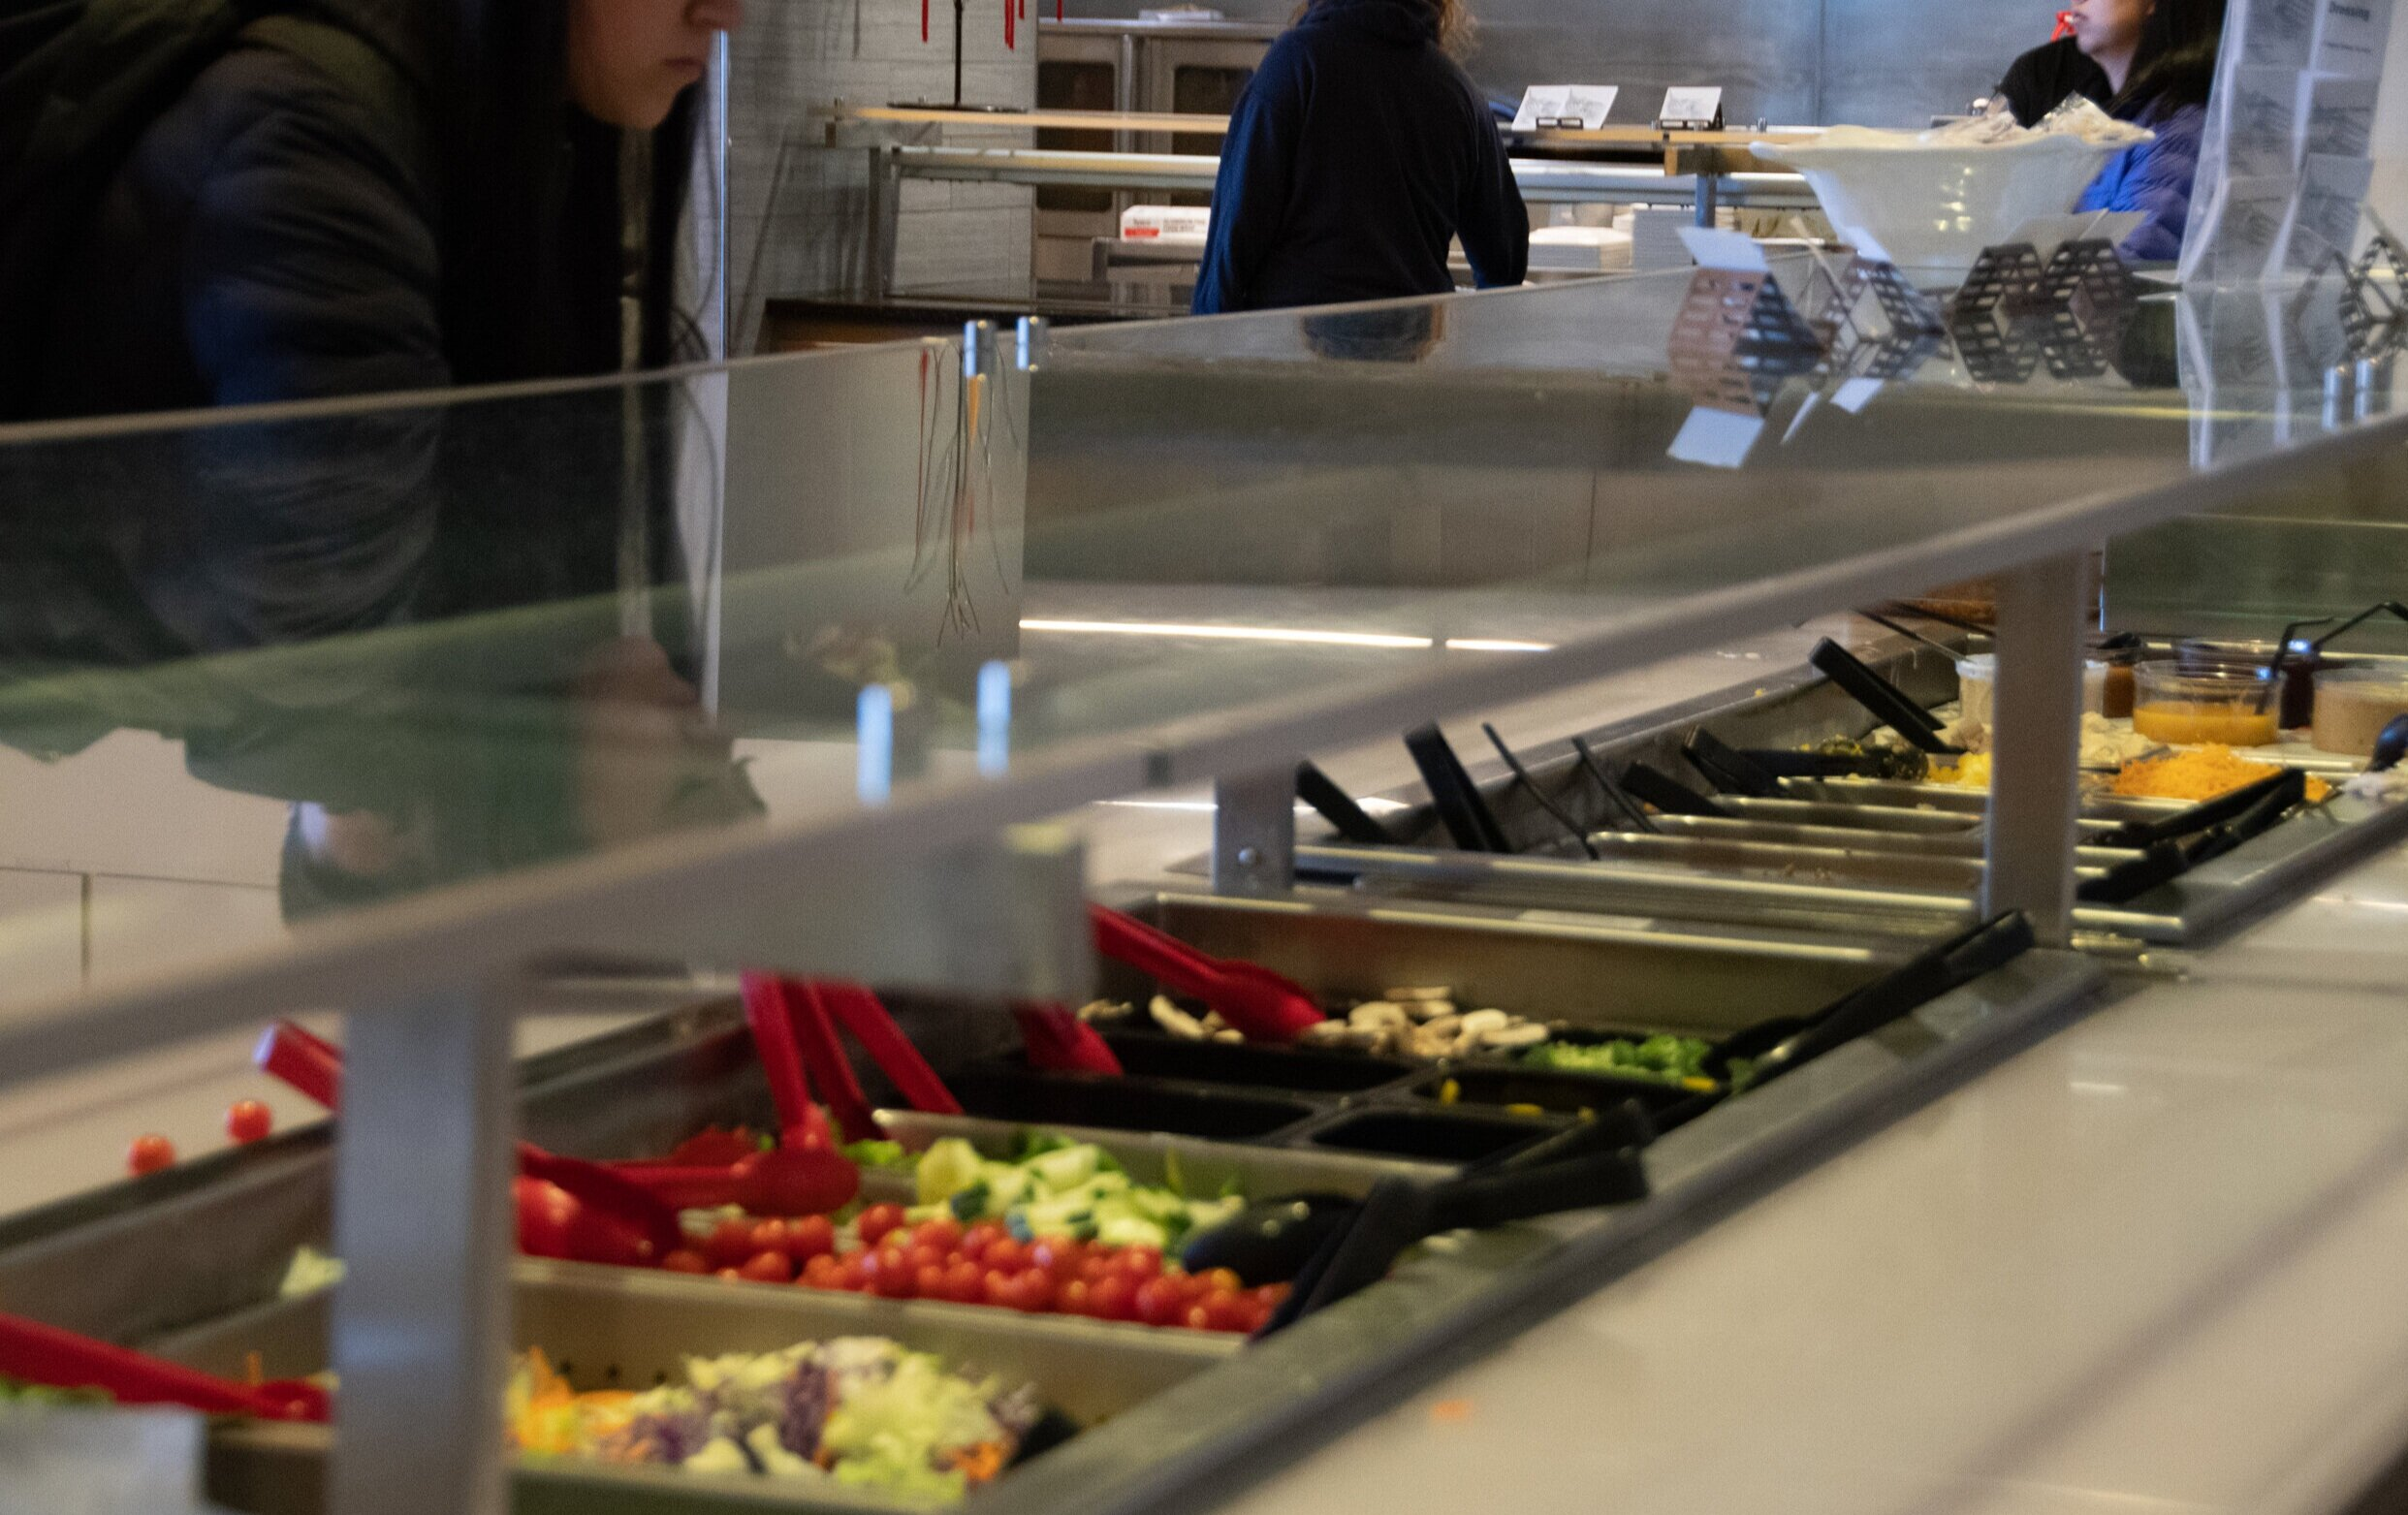 All of the dining halls offer salad and fresh fruits, which is good for people's efforts to eat healthy. But when we get past that, we see that there are very, very few options to eat healthy food in a dining hall that aren't just a salad.